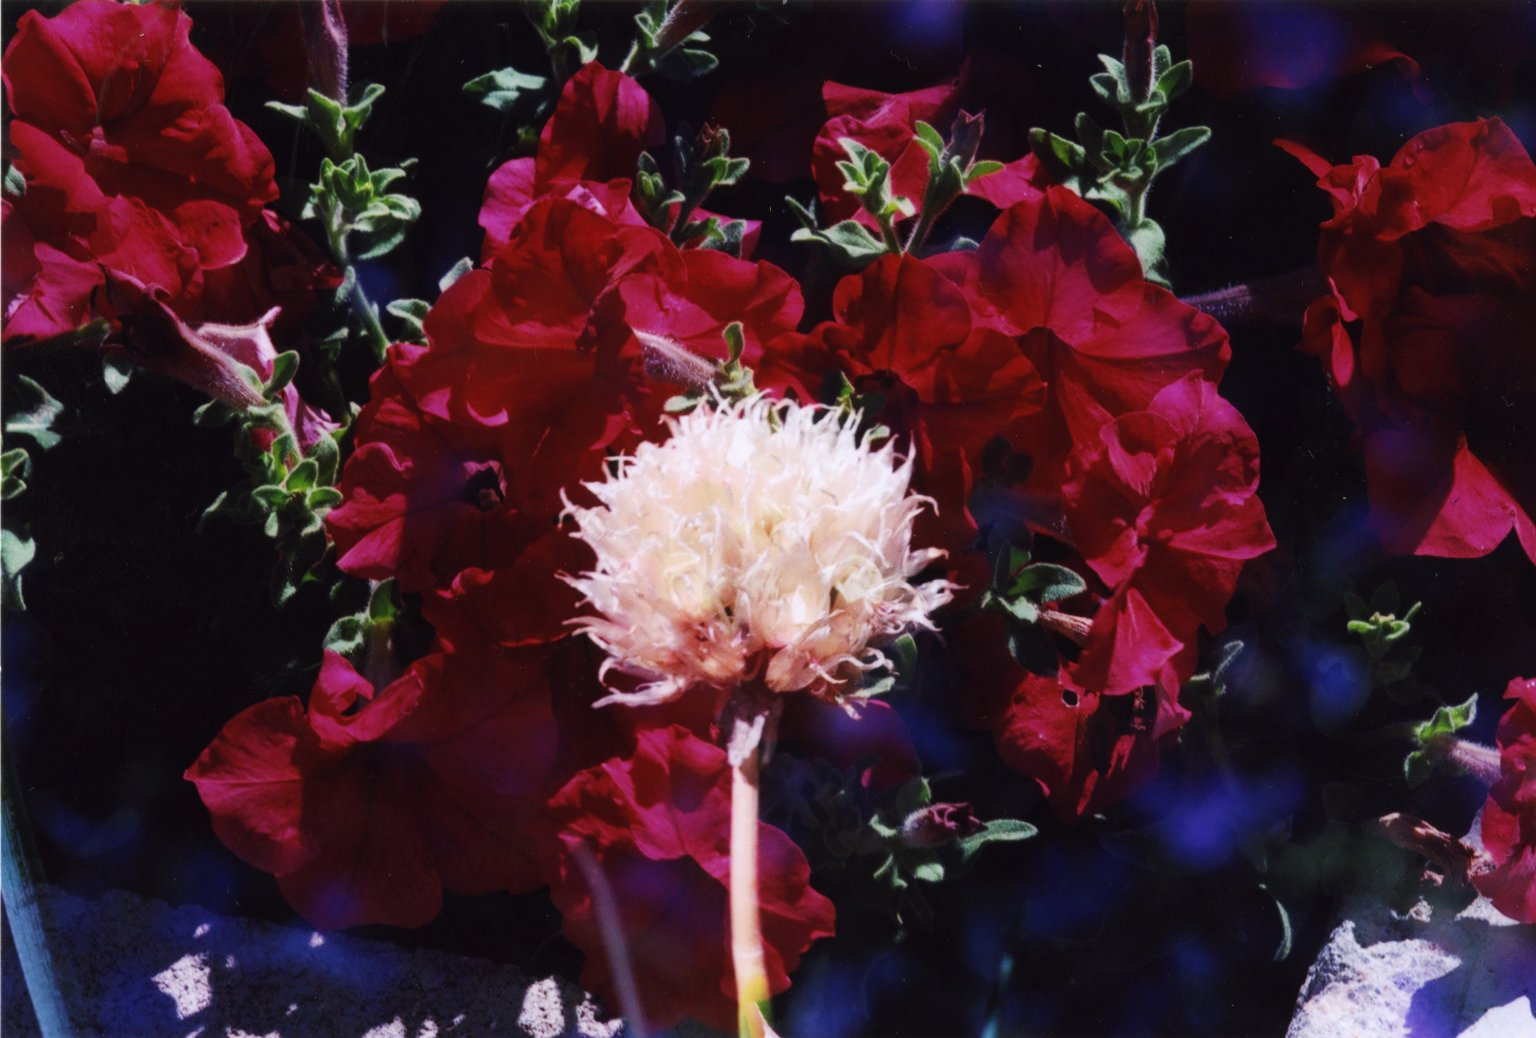 Double Exposure - White flower over red flowers